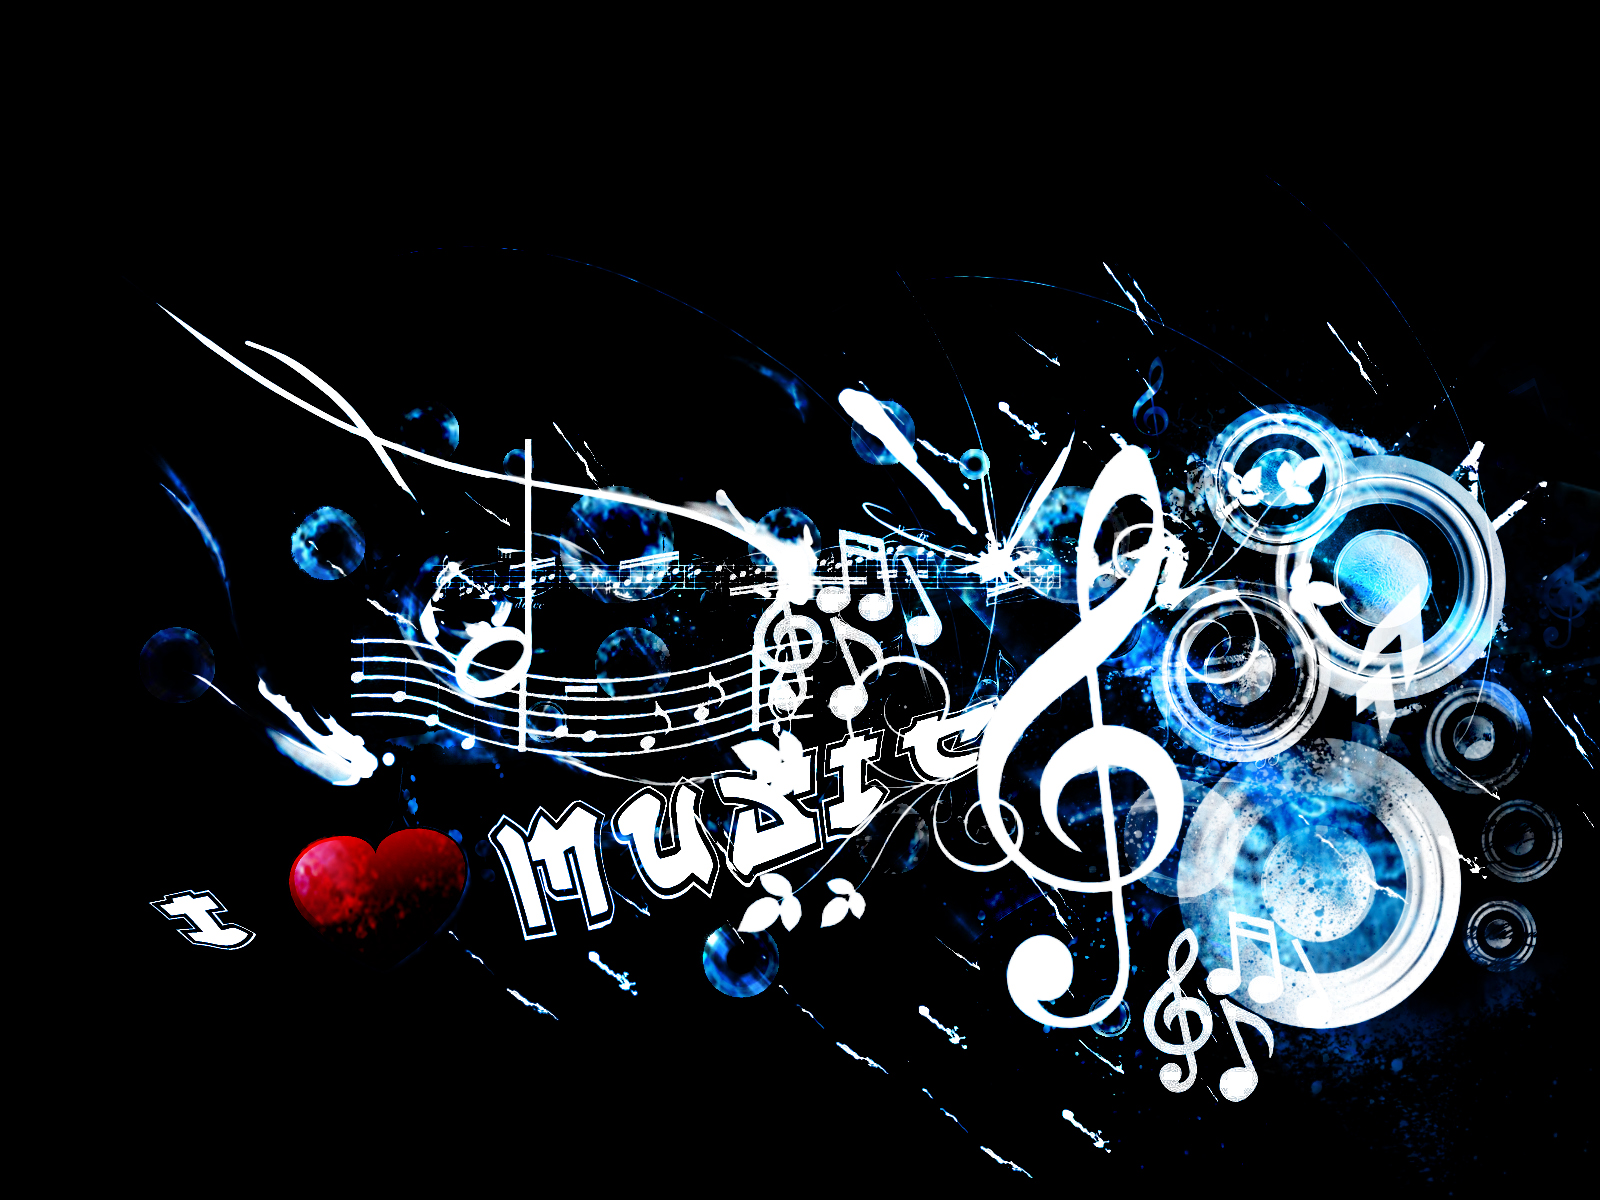 music hd wallpapers hd music screensavers desktop wallpapers wide